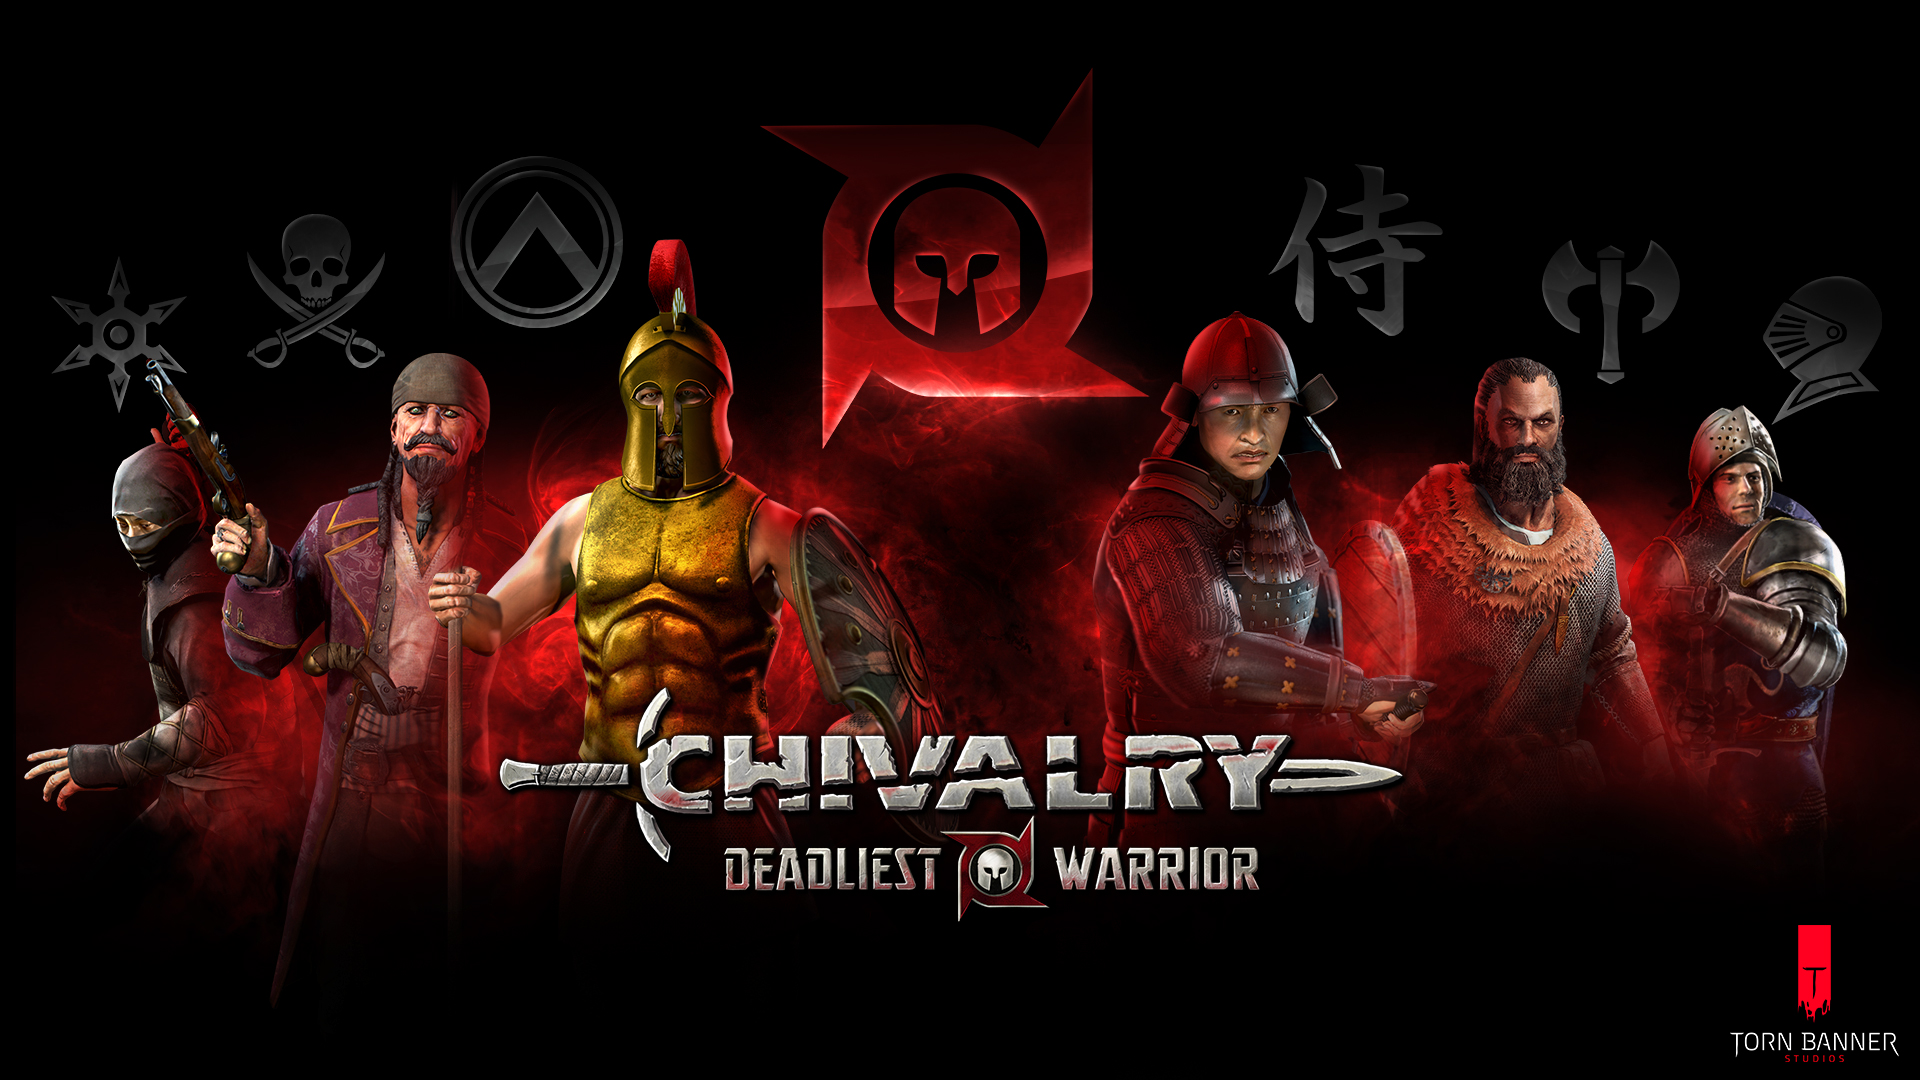 Release Date Trailer for Chivalry: Deadliest Warrior